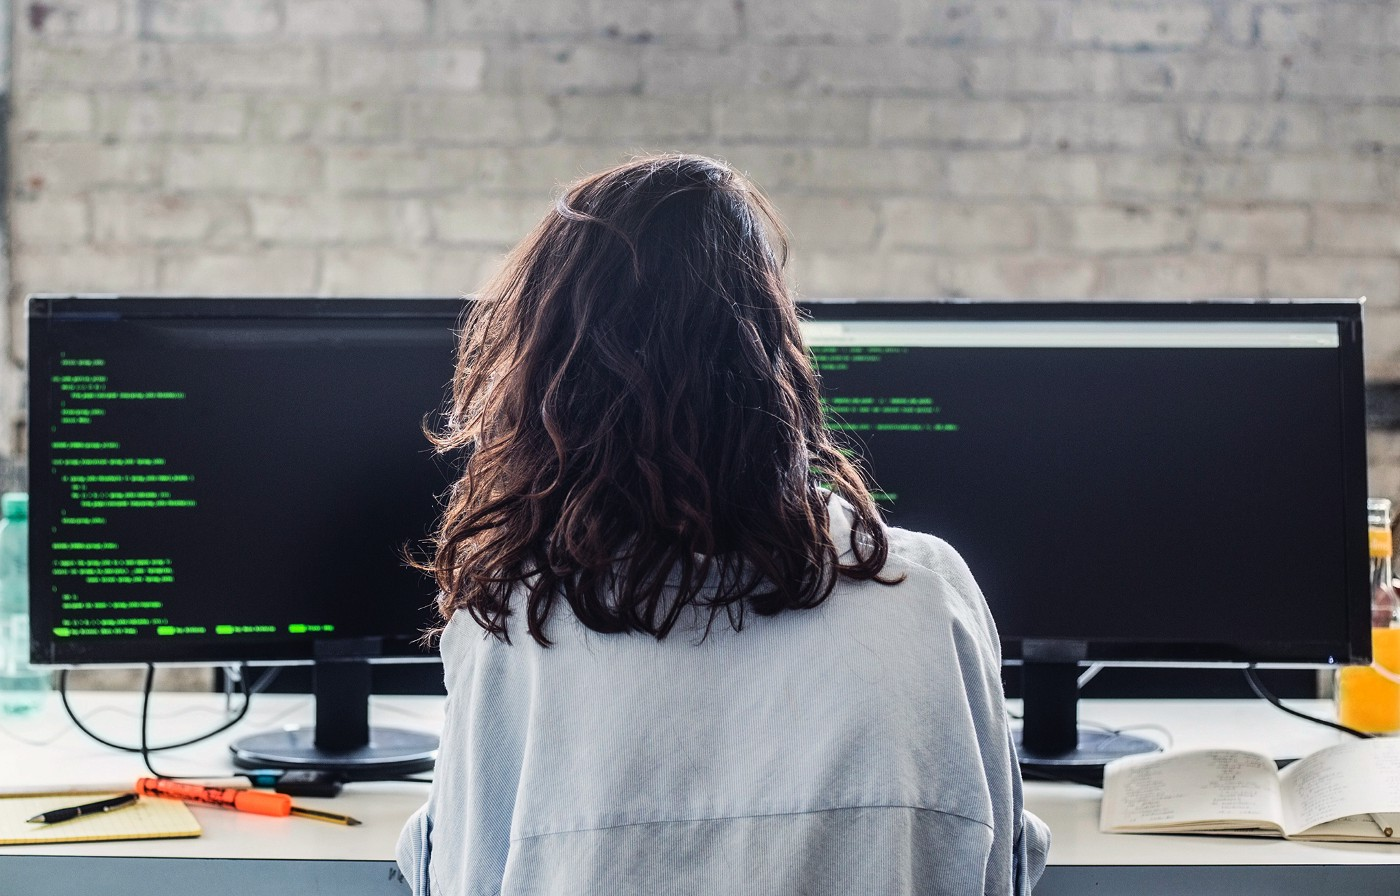 A female product designer reviews code. She is facing two computer monitors and has her back facing the camera.